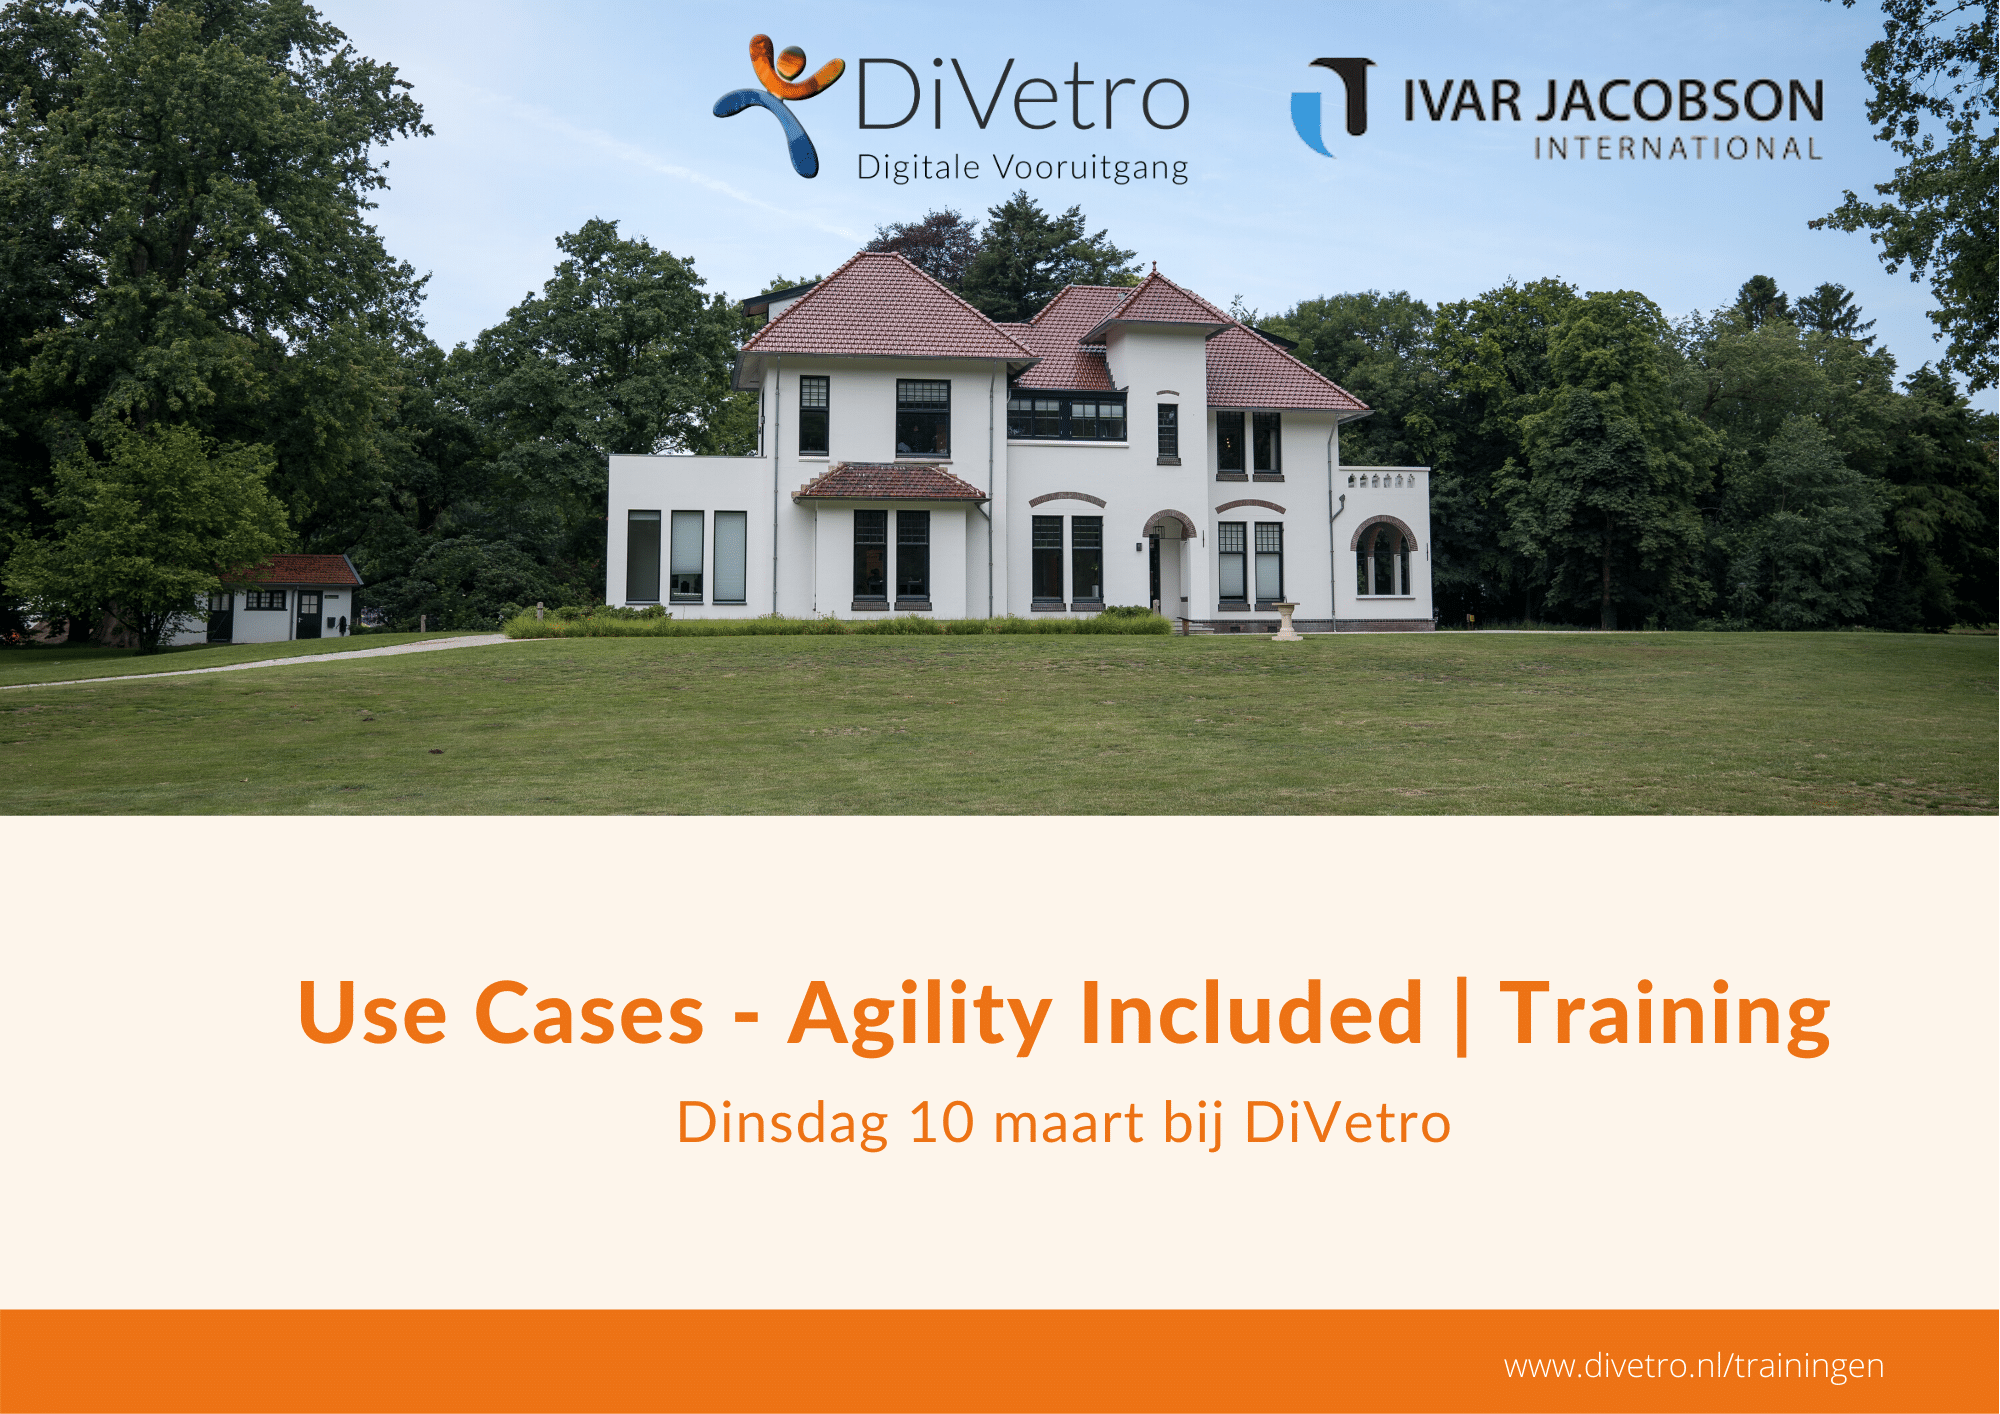 Use Cases - Agility Included Training